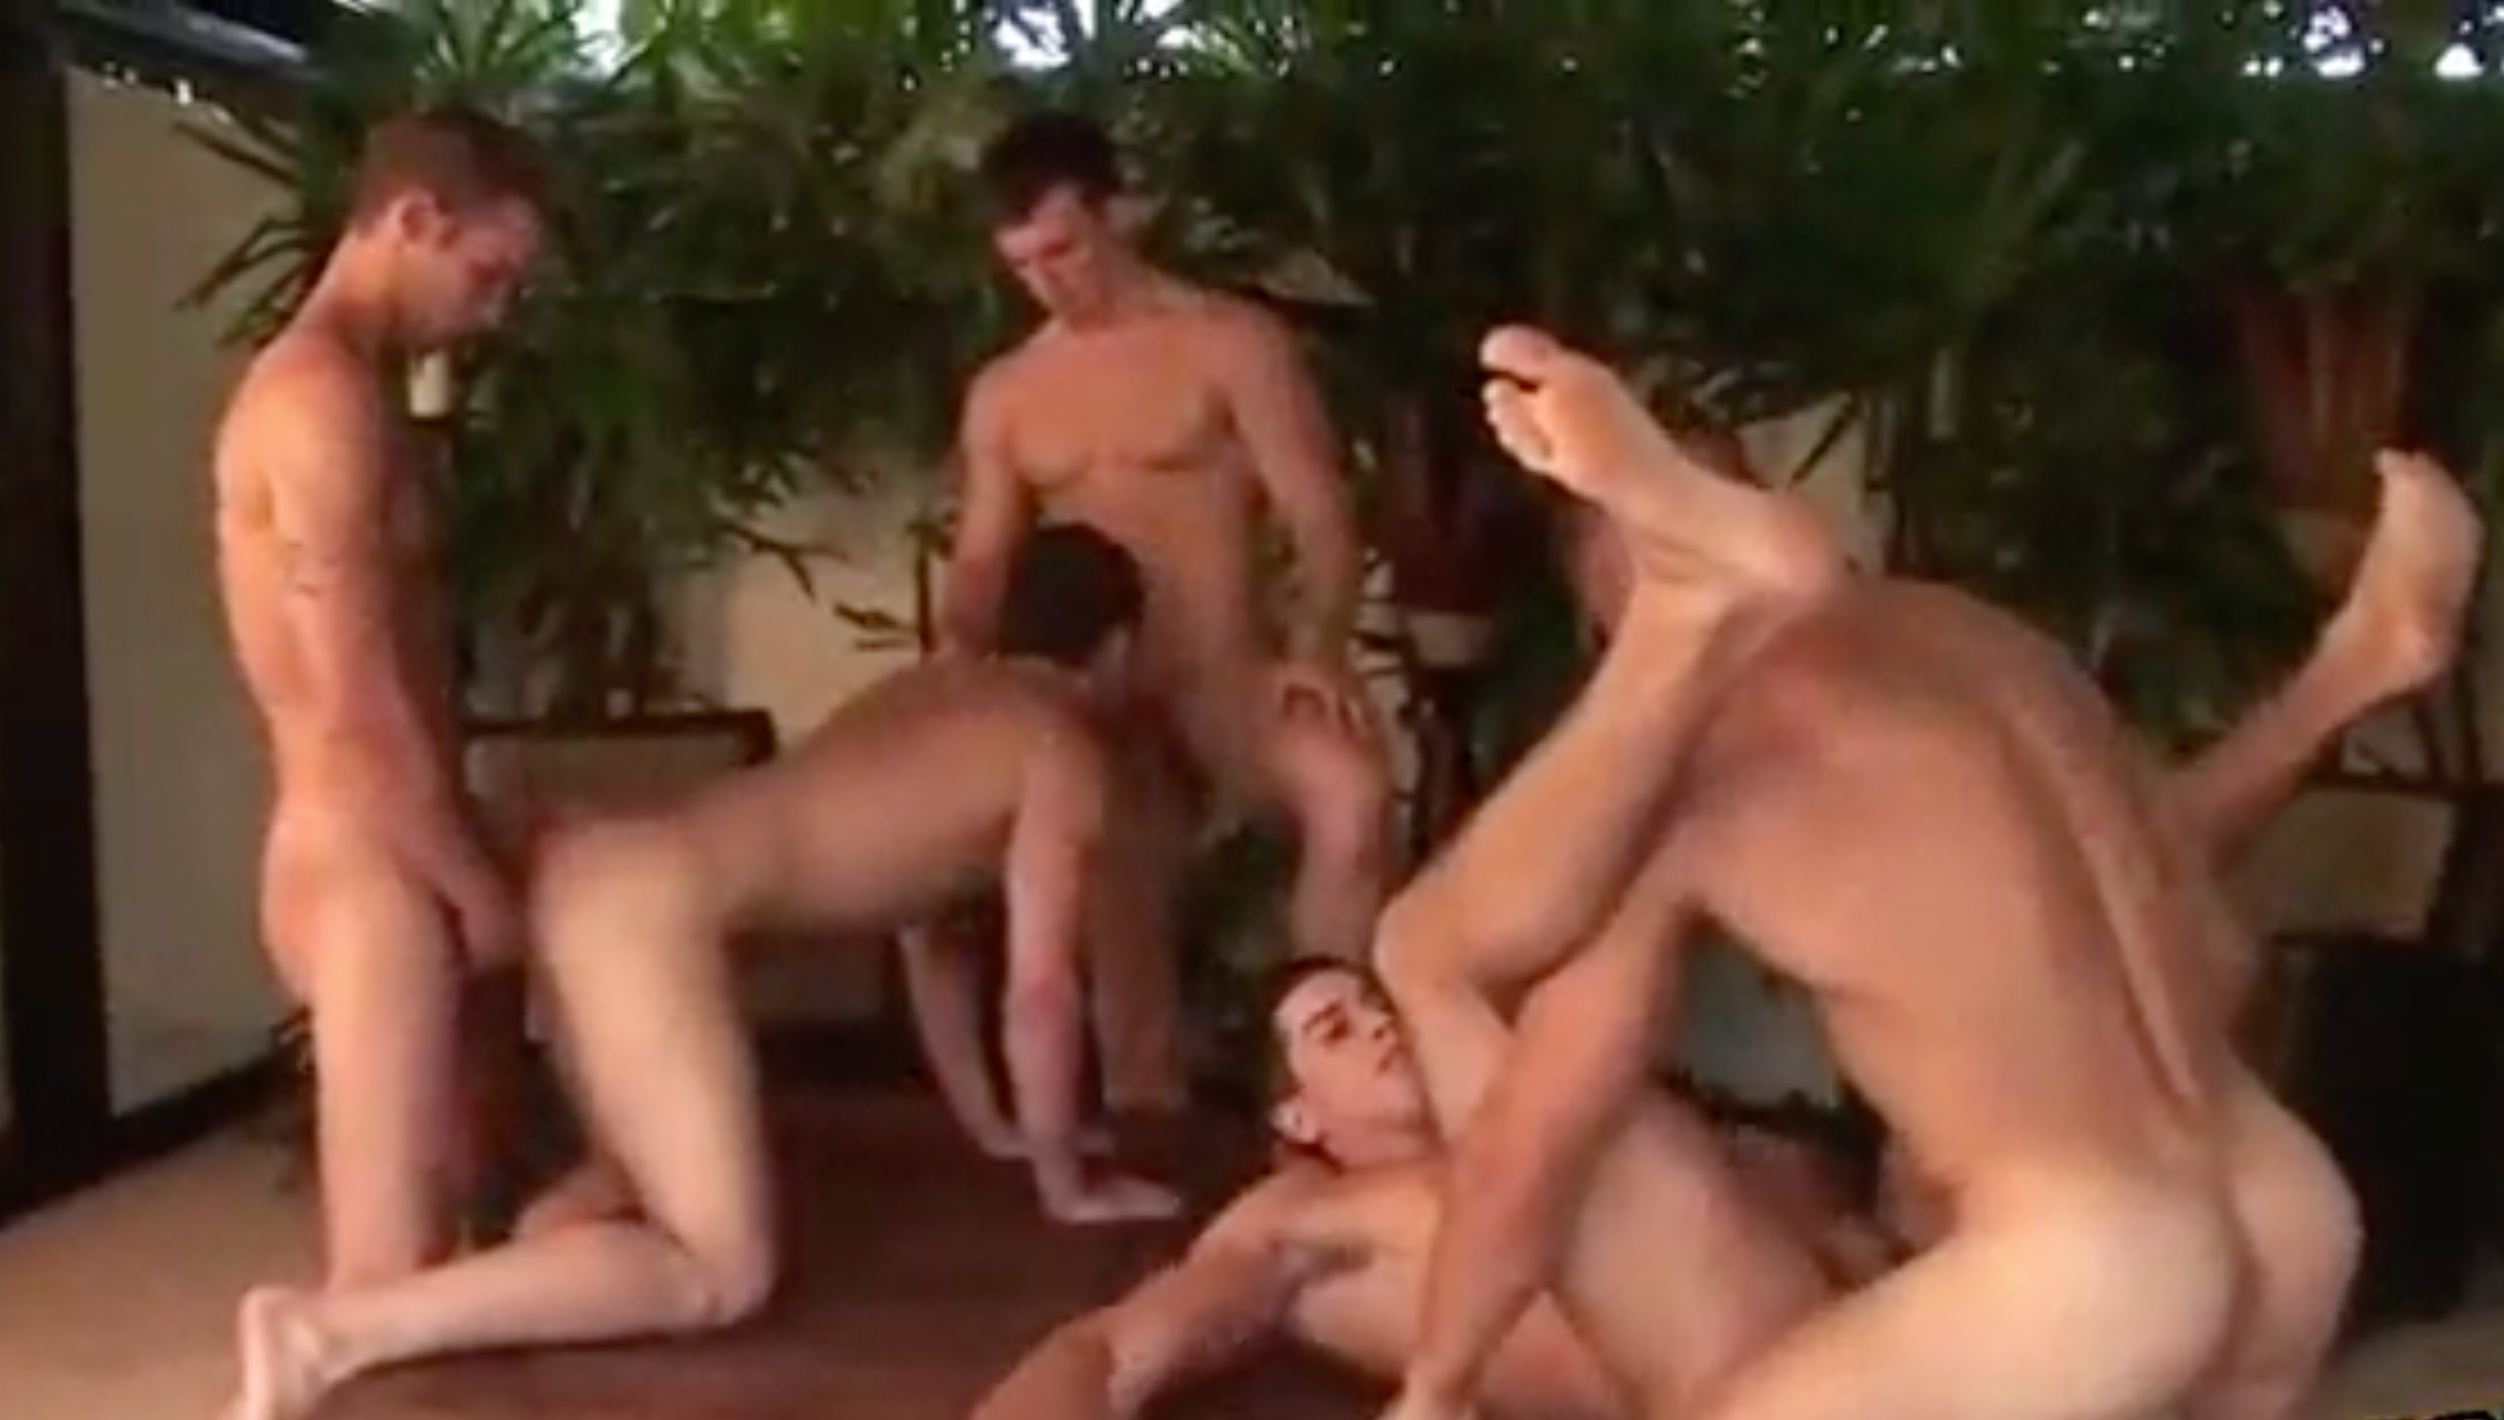 Cinco Safados, Pornô Gay, Sexo Gay, Sean Cody